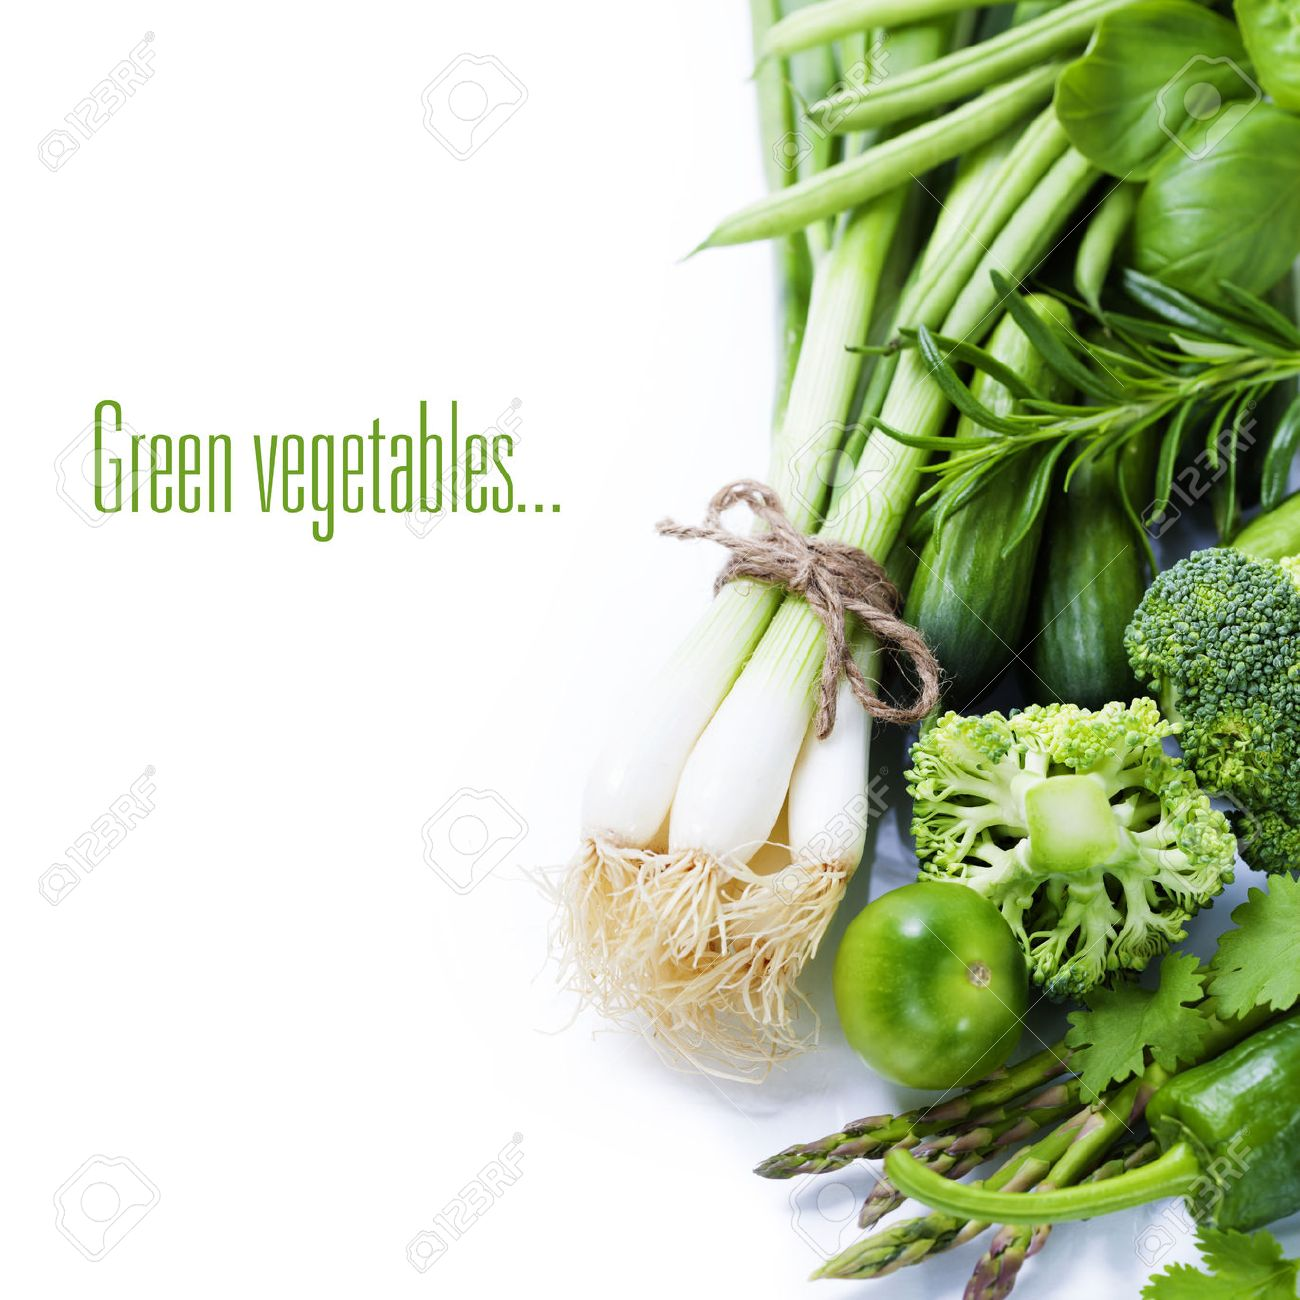 fresh green vegetables on white background (with easy removable sample text) - 23302173